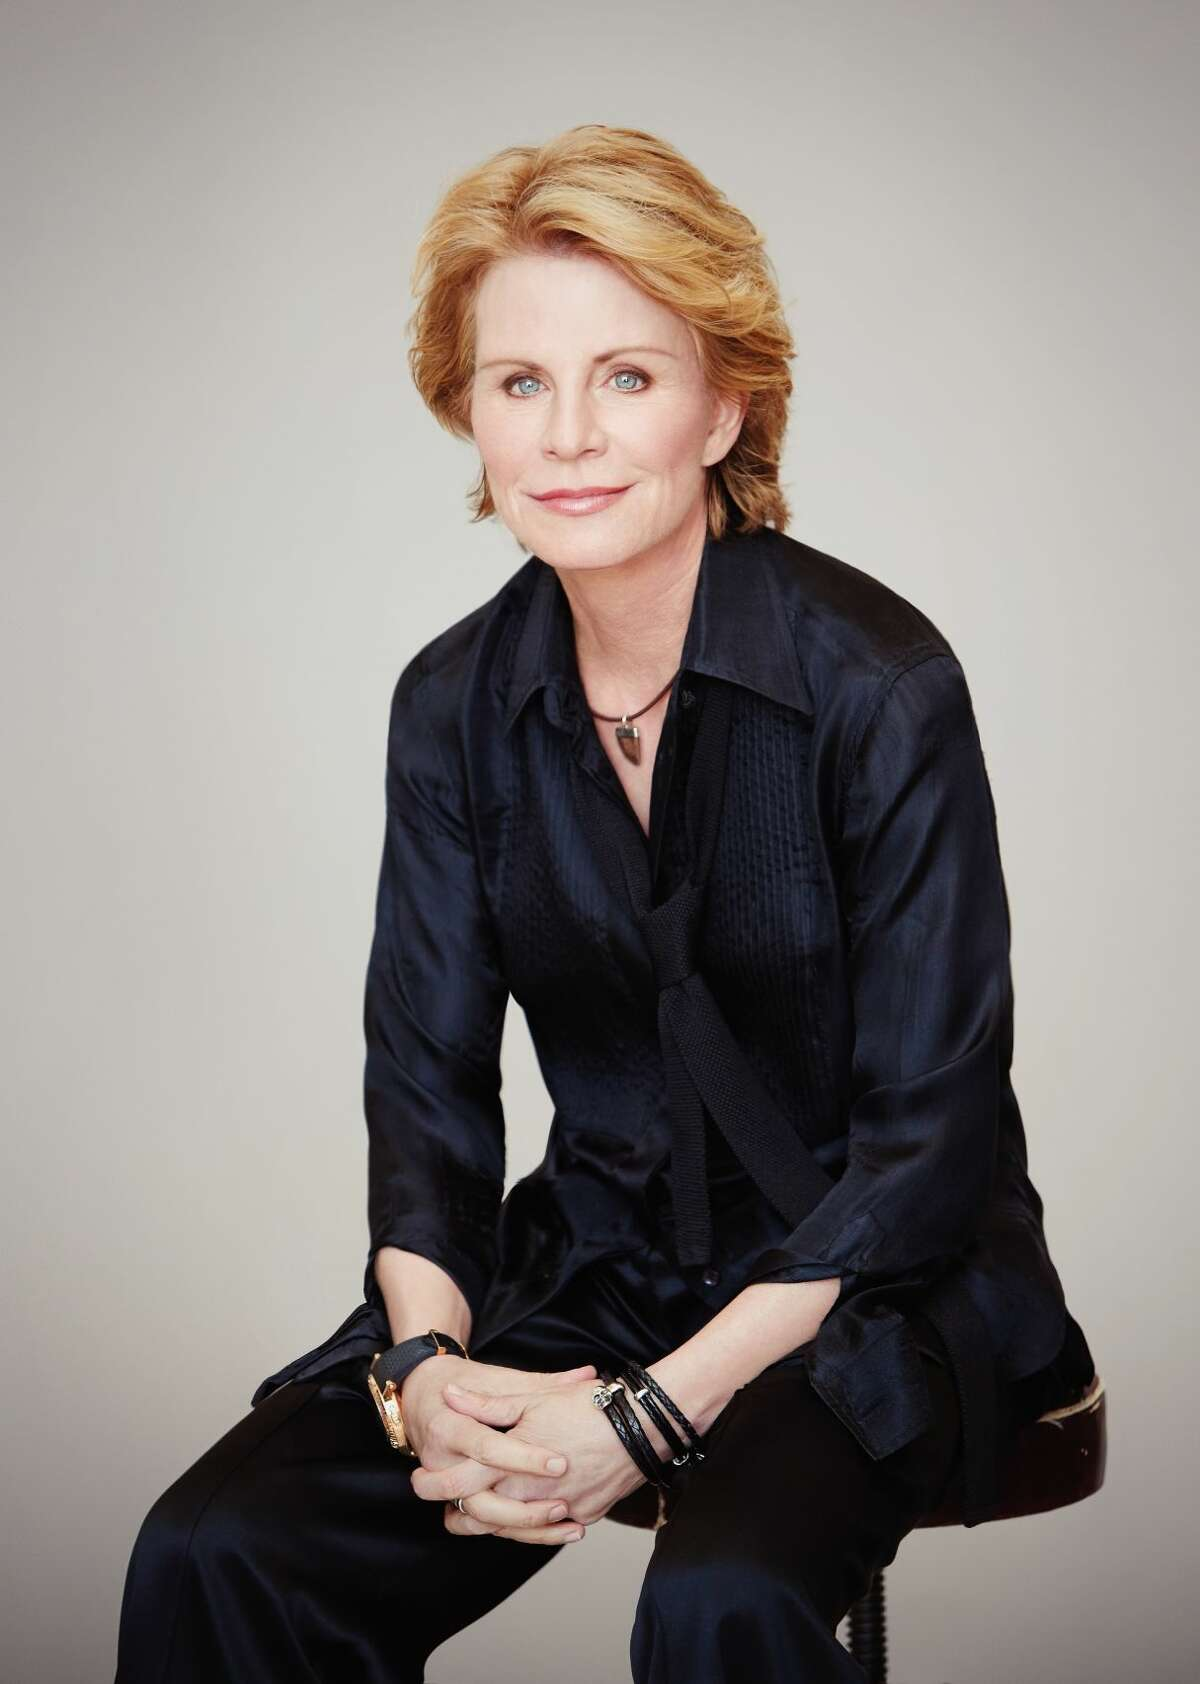 No. 1 New York Times bestselling author Patricia Cornwell will visit Wilton Library on Wednesday, Nov. 12 from 7-8:30 p.m. as part of her four-stop tour in the U.S. and the only one in the Northeast.